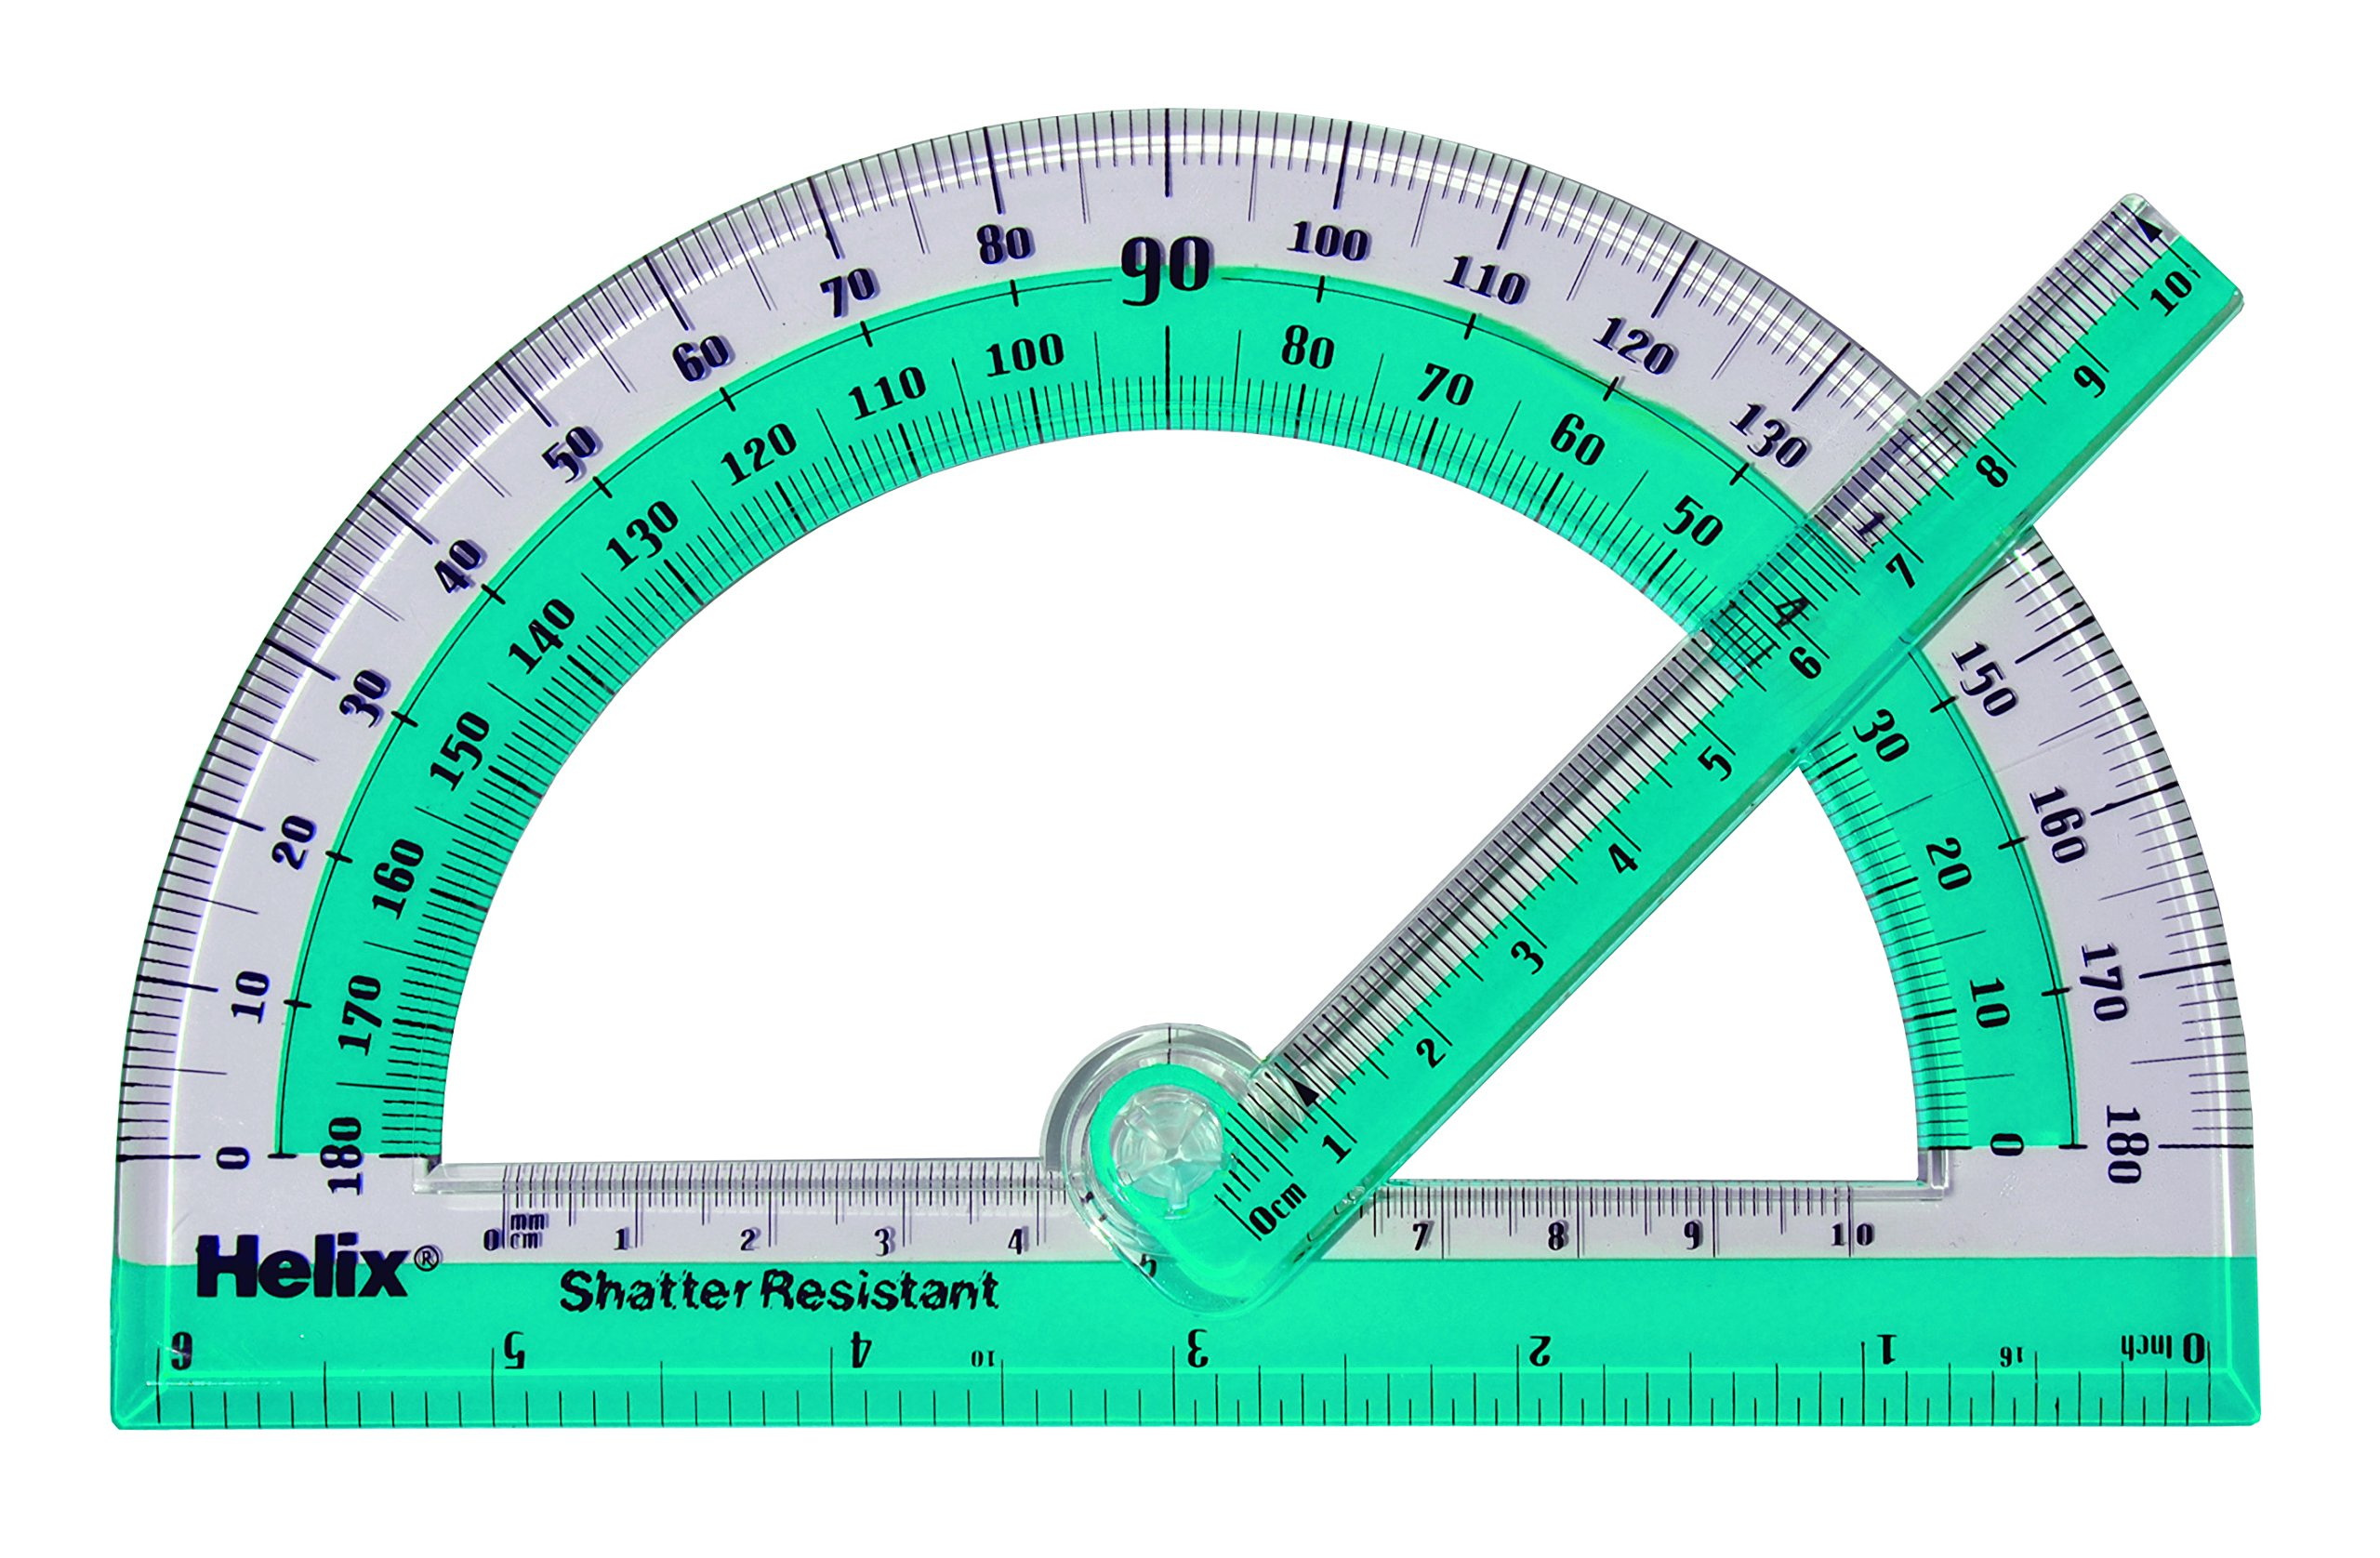 Helix 180° Shatter Resistant Swing Arm Protractor 6'' / 15cm (60009) by Maped Helix USA (Image #3)